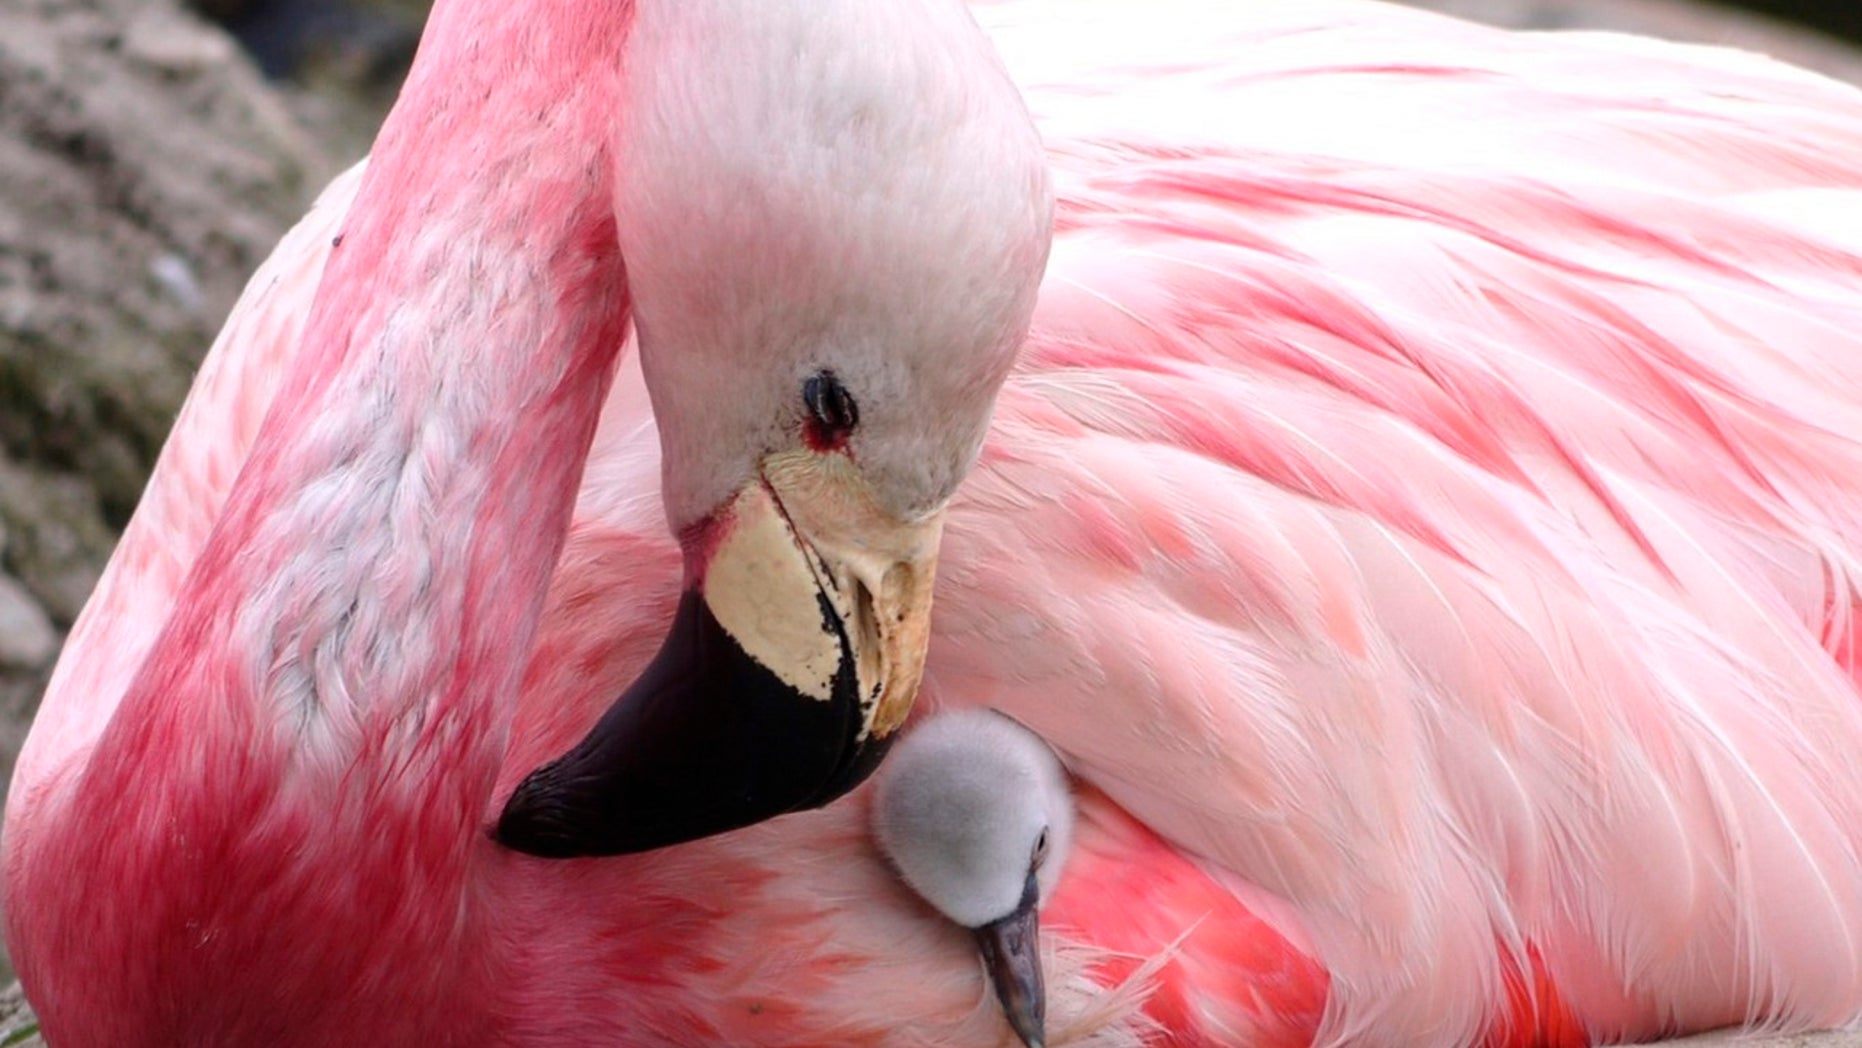 Several Andean flamingos at a reserve in England have laid eggs for the first time in over a decade, a conservation charity says. An Andean flamingo looks after a surrogate Chilean flamingo chick, supplanted to replace its own infertile egg, in this undated photo.